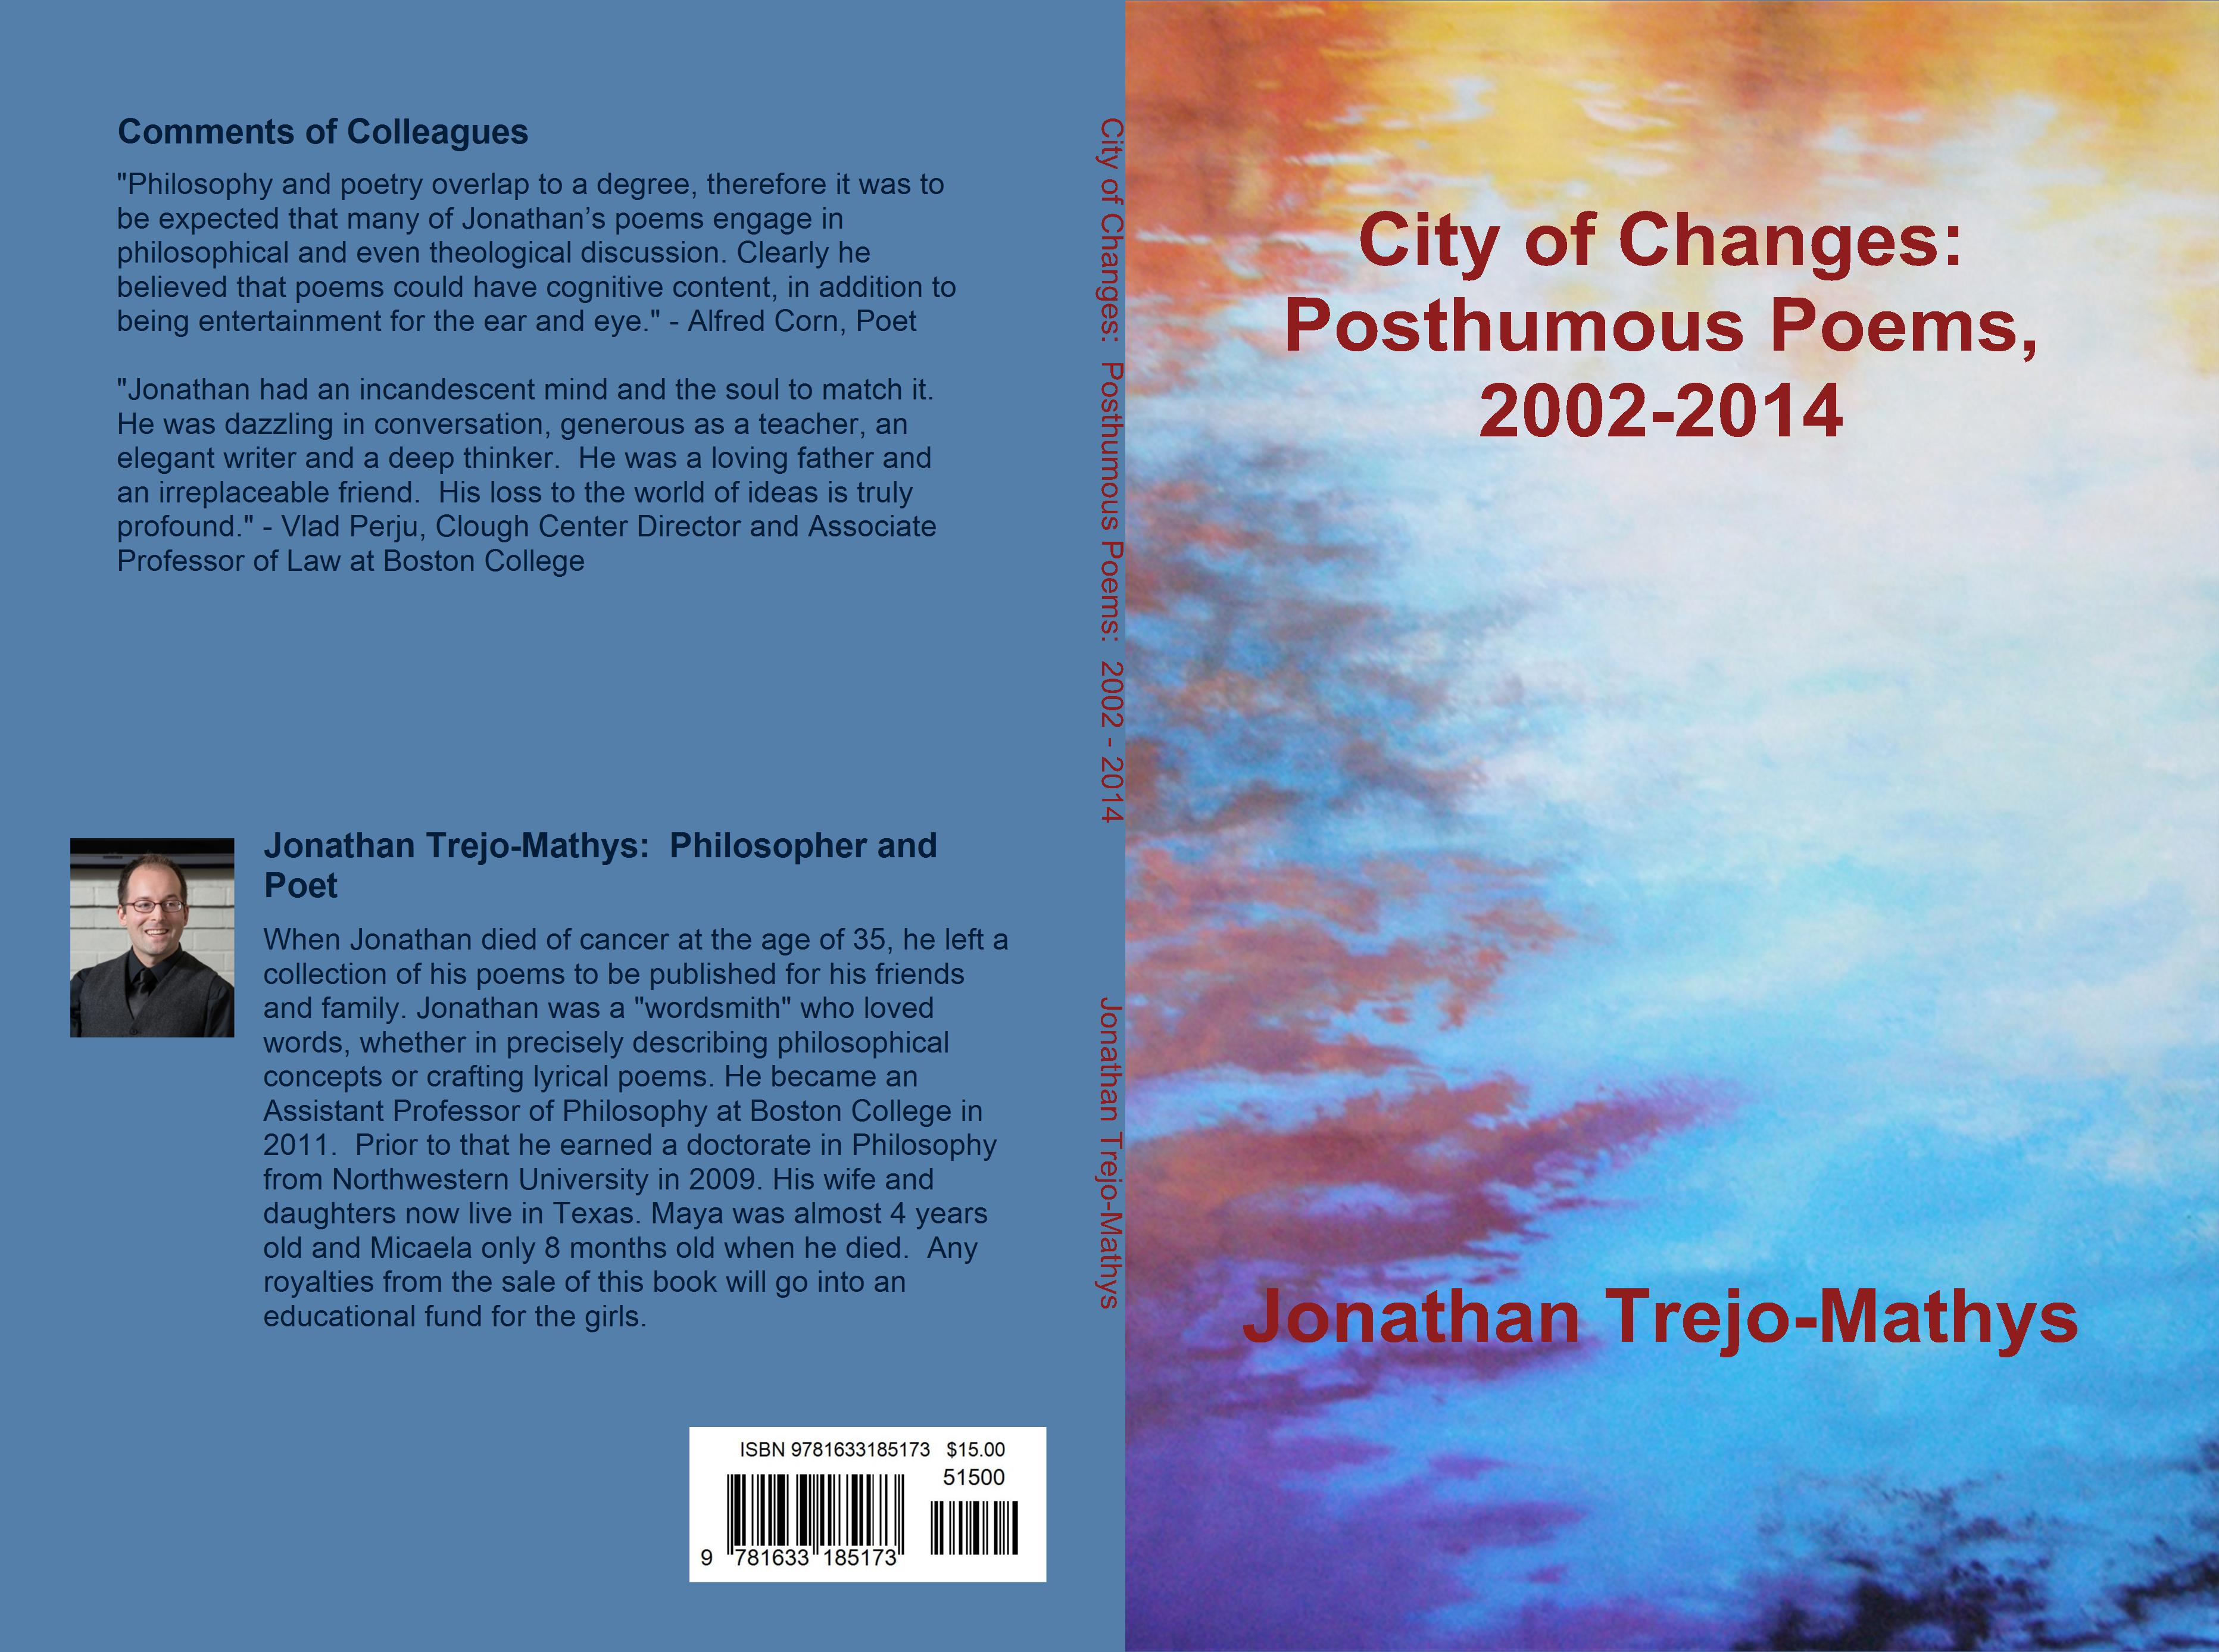 City of Changes: Posthumous Poems, 2002-2014 cover image